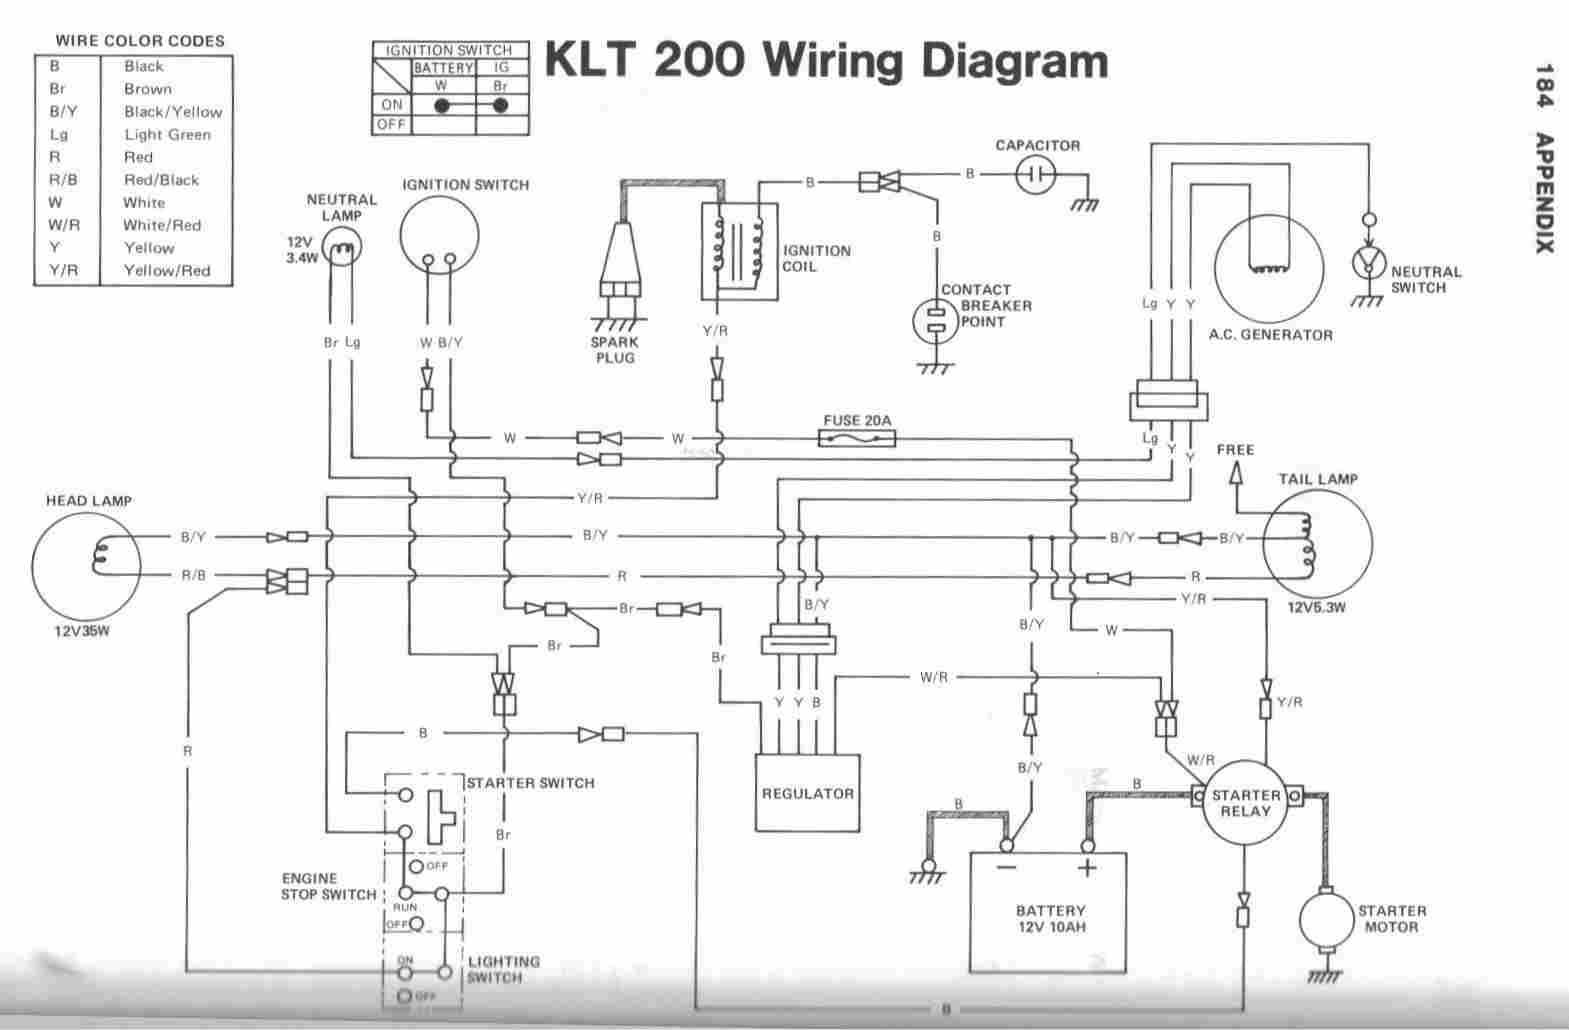 2869034594ce054a636782e5c44b61b4 residential electrical wiring diagrams pdf easy routing cool schematic vs wiring diagram at eliteediting.co